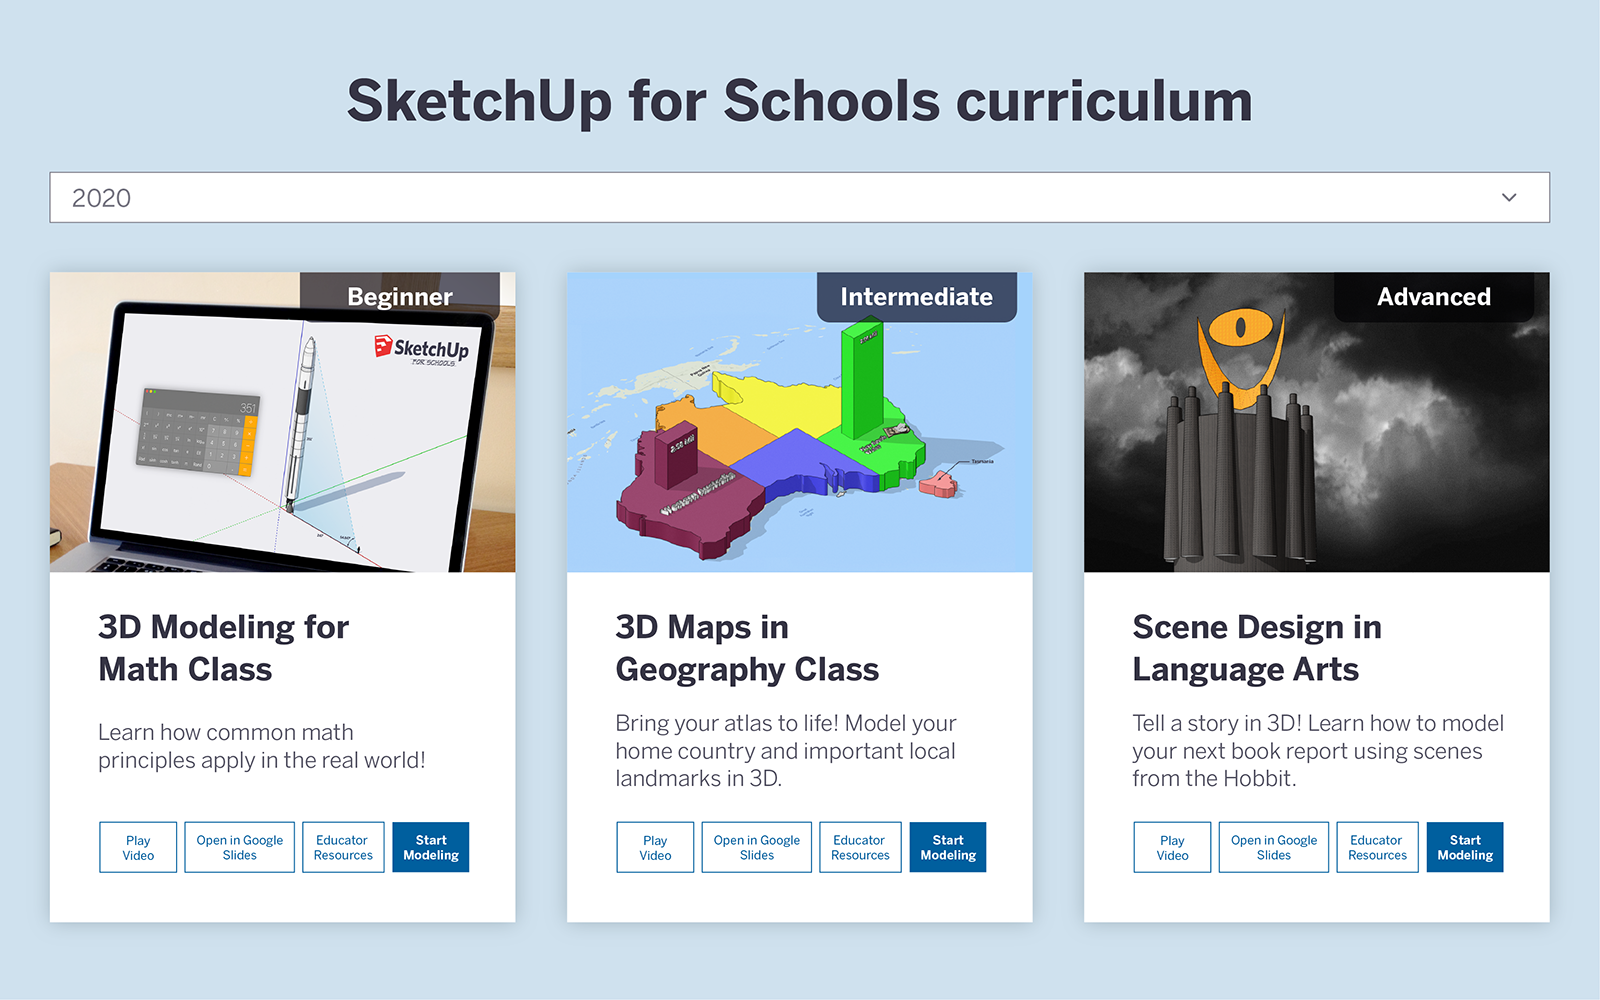 SketchUp for Schools New Curriculum 2020